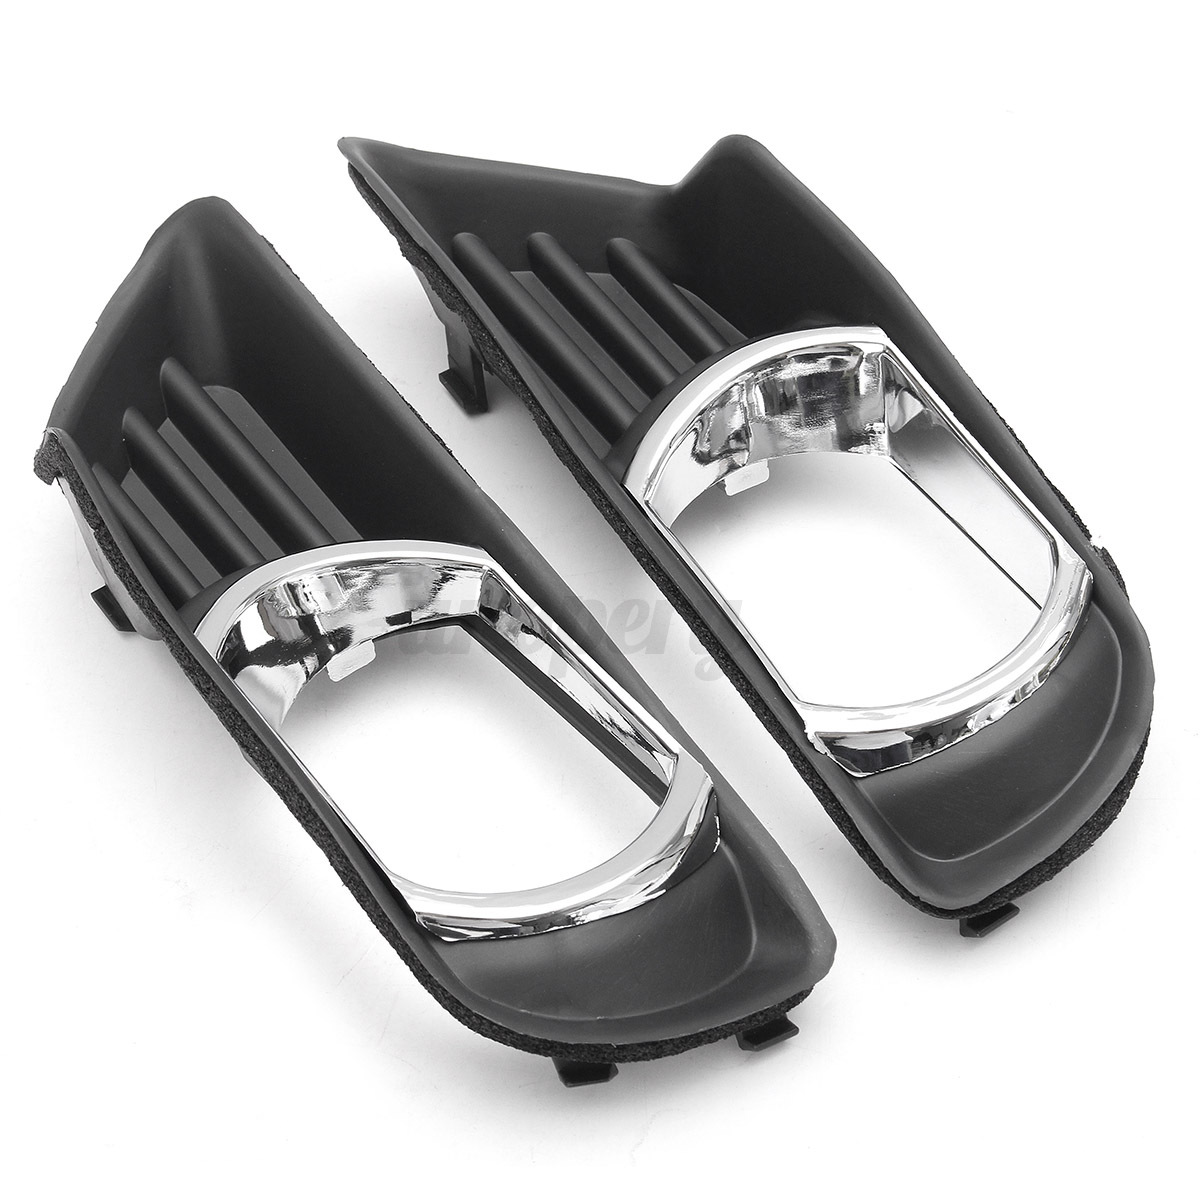 pair clear front bumper fog lights w cover switch for. Black Bedroom Furniture Sets. Home Design Ideas